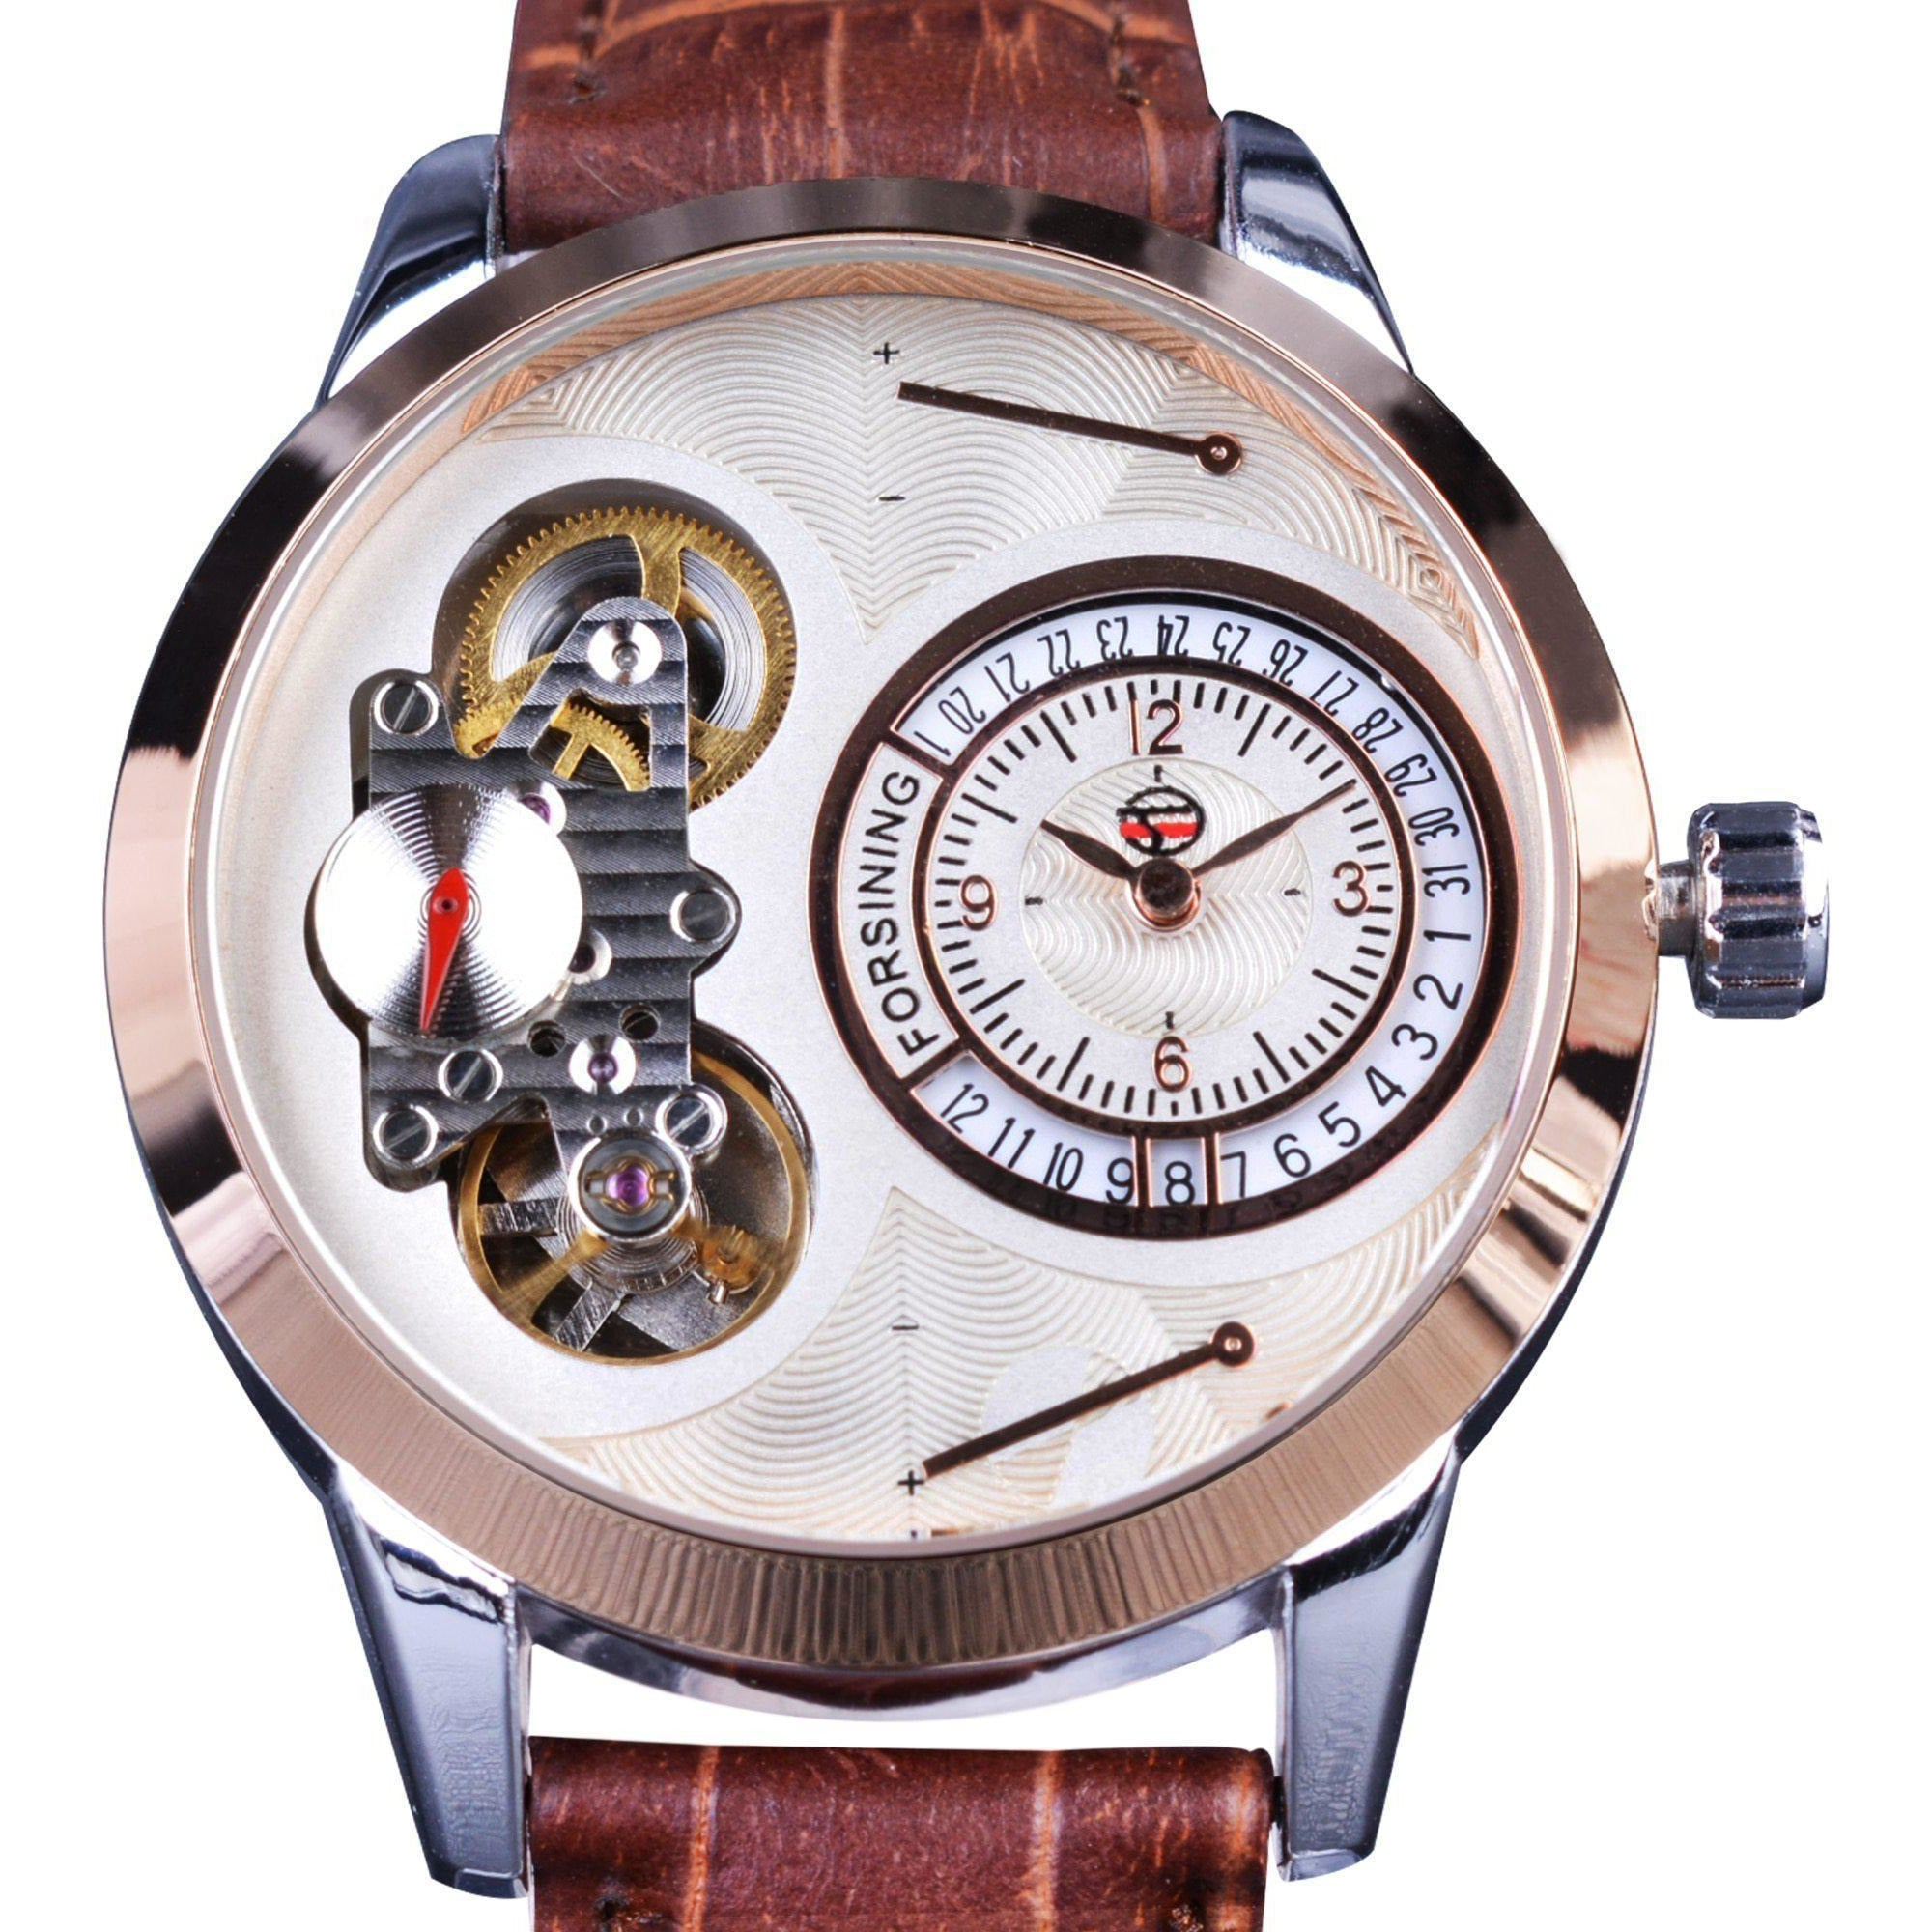 Classic Tourbillon Watch-The Steampunk Cave